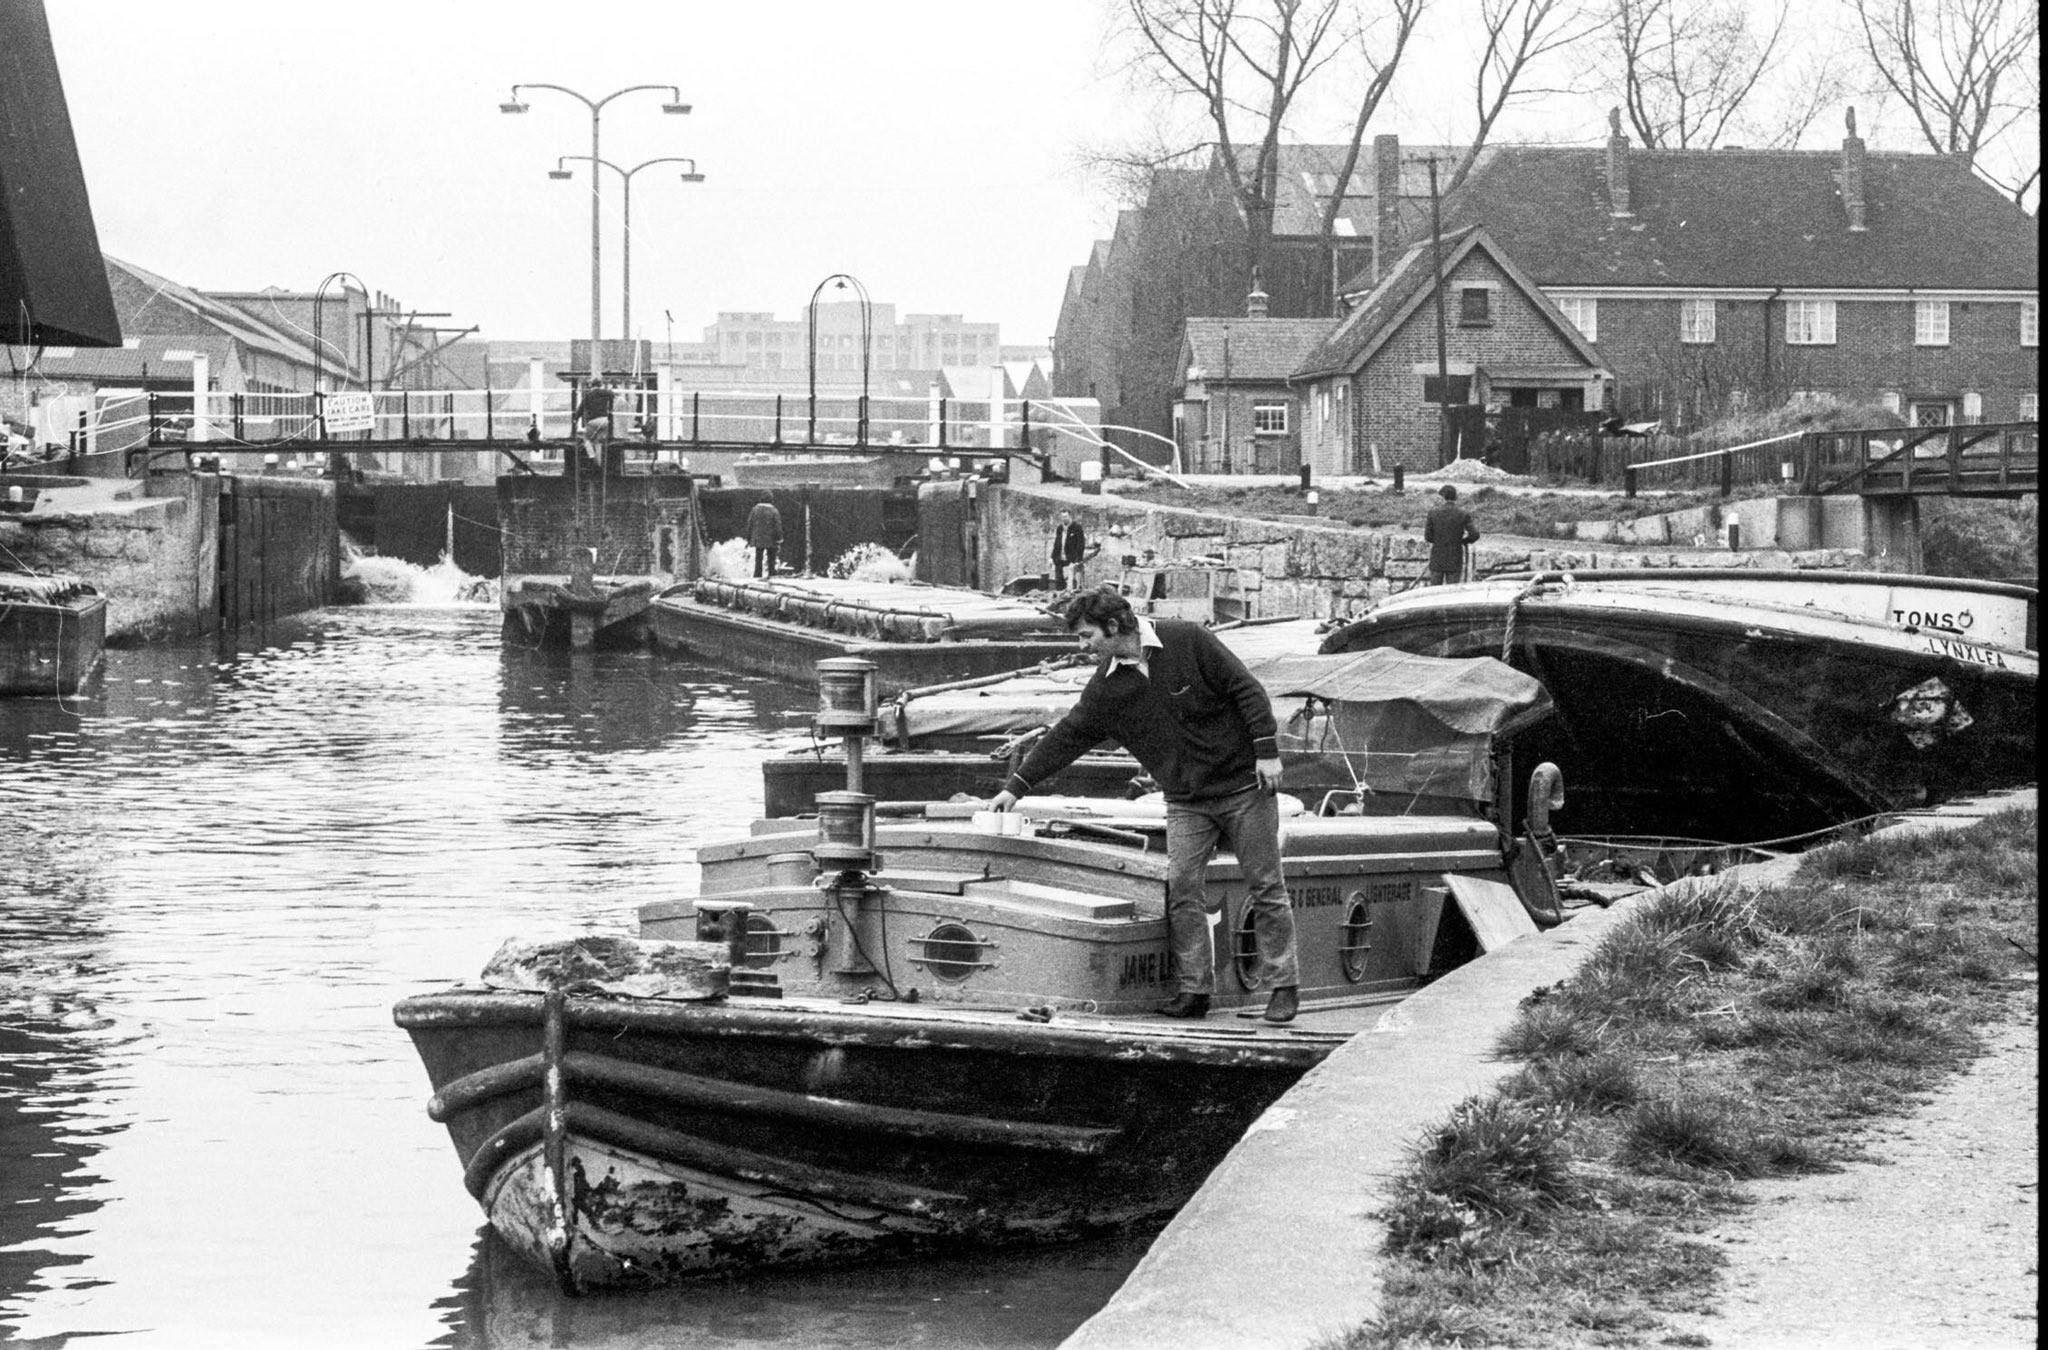 Old Ford Locks River Lea 1971 London Docklands Canals